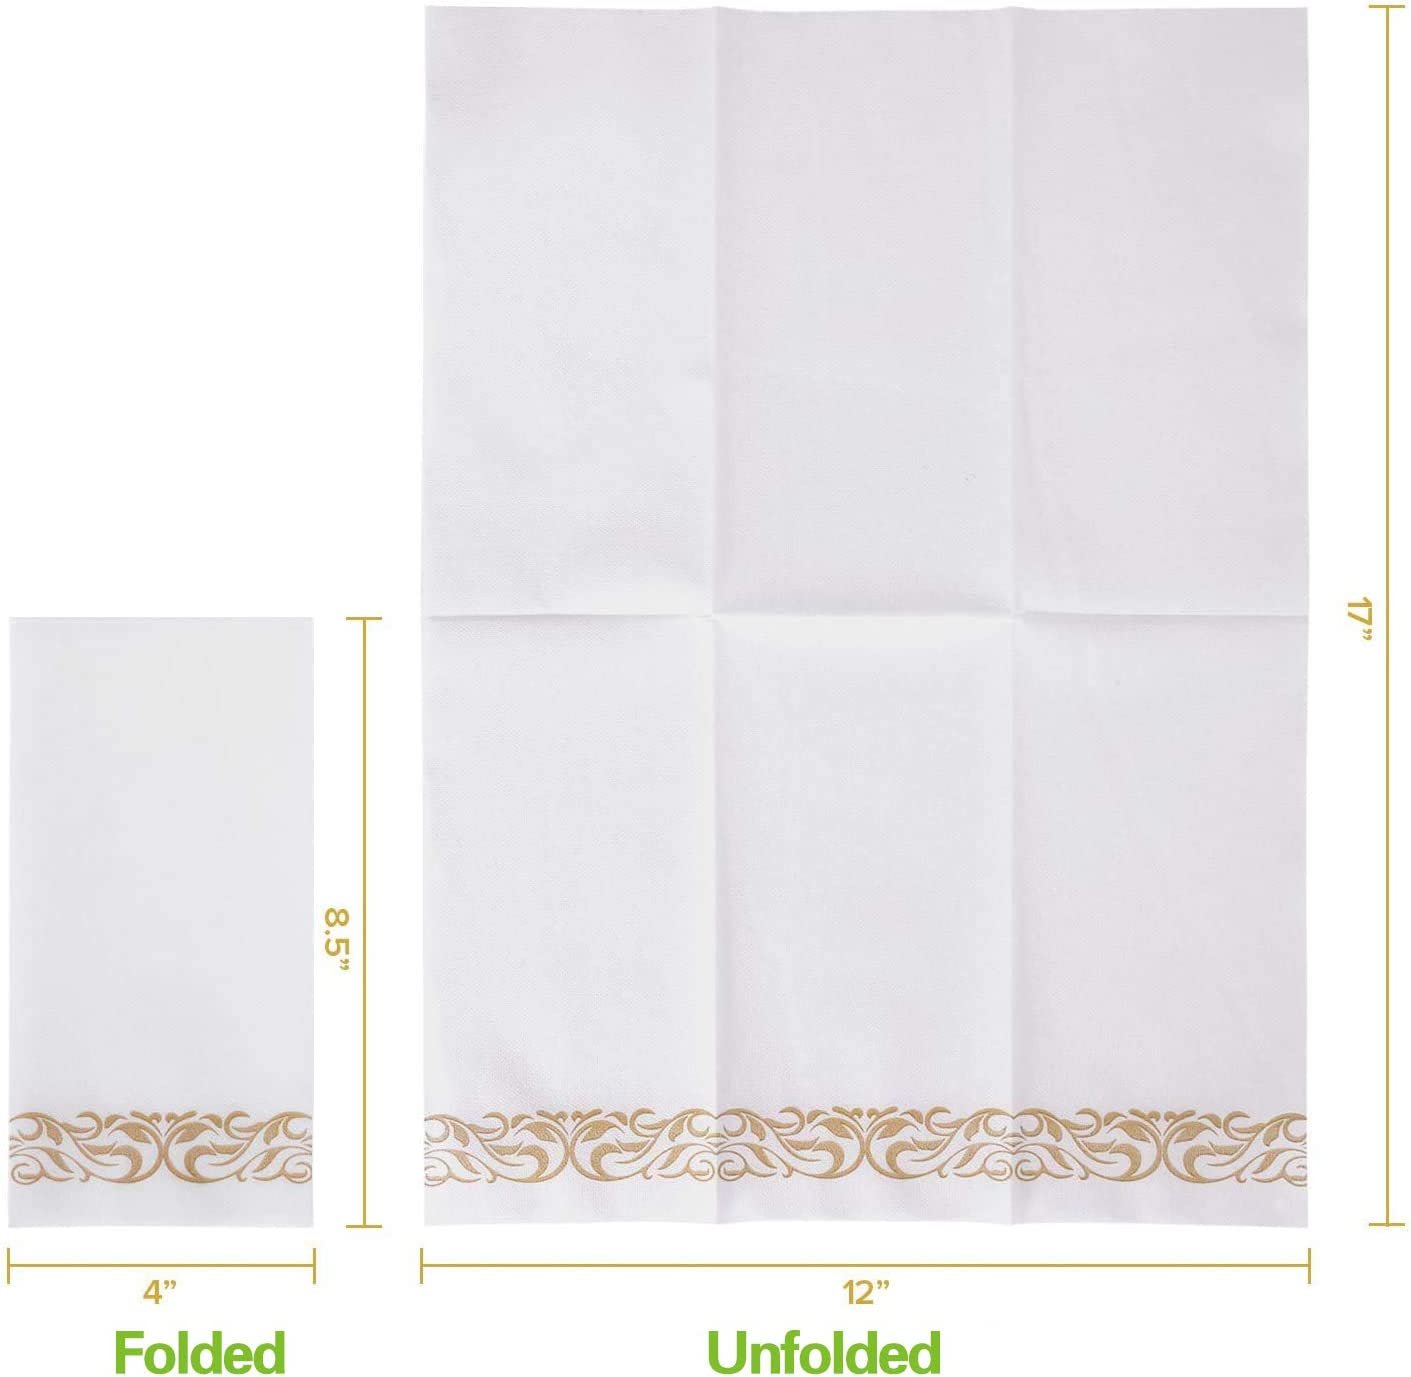 Parties Dinners or Events Party Napkins Wedding Napkins for Kitchen 100 Pack Paper Napkins Guest Towels Gold Disposable Dinner Napkins Paper Soft Absorbent